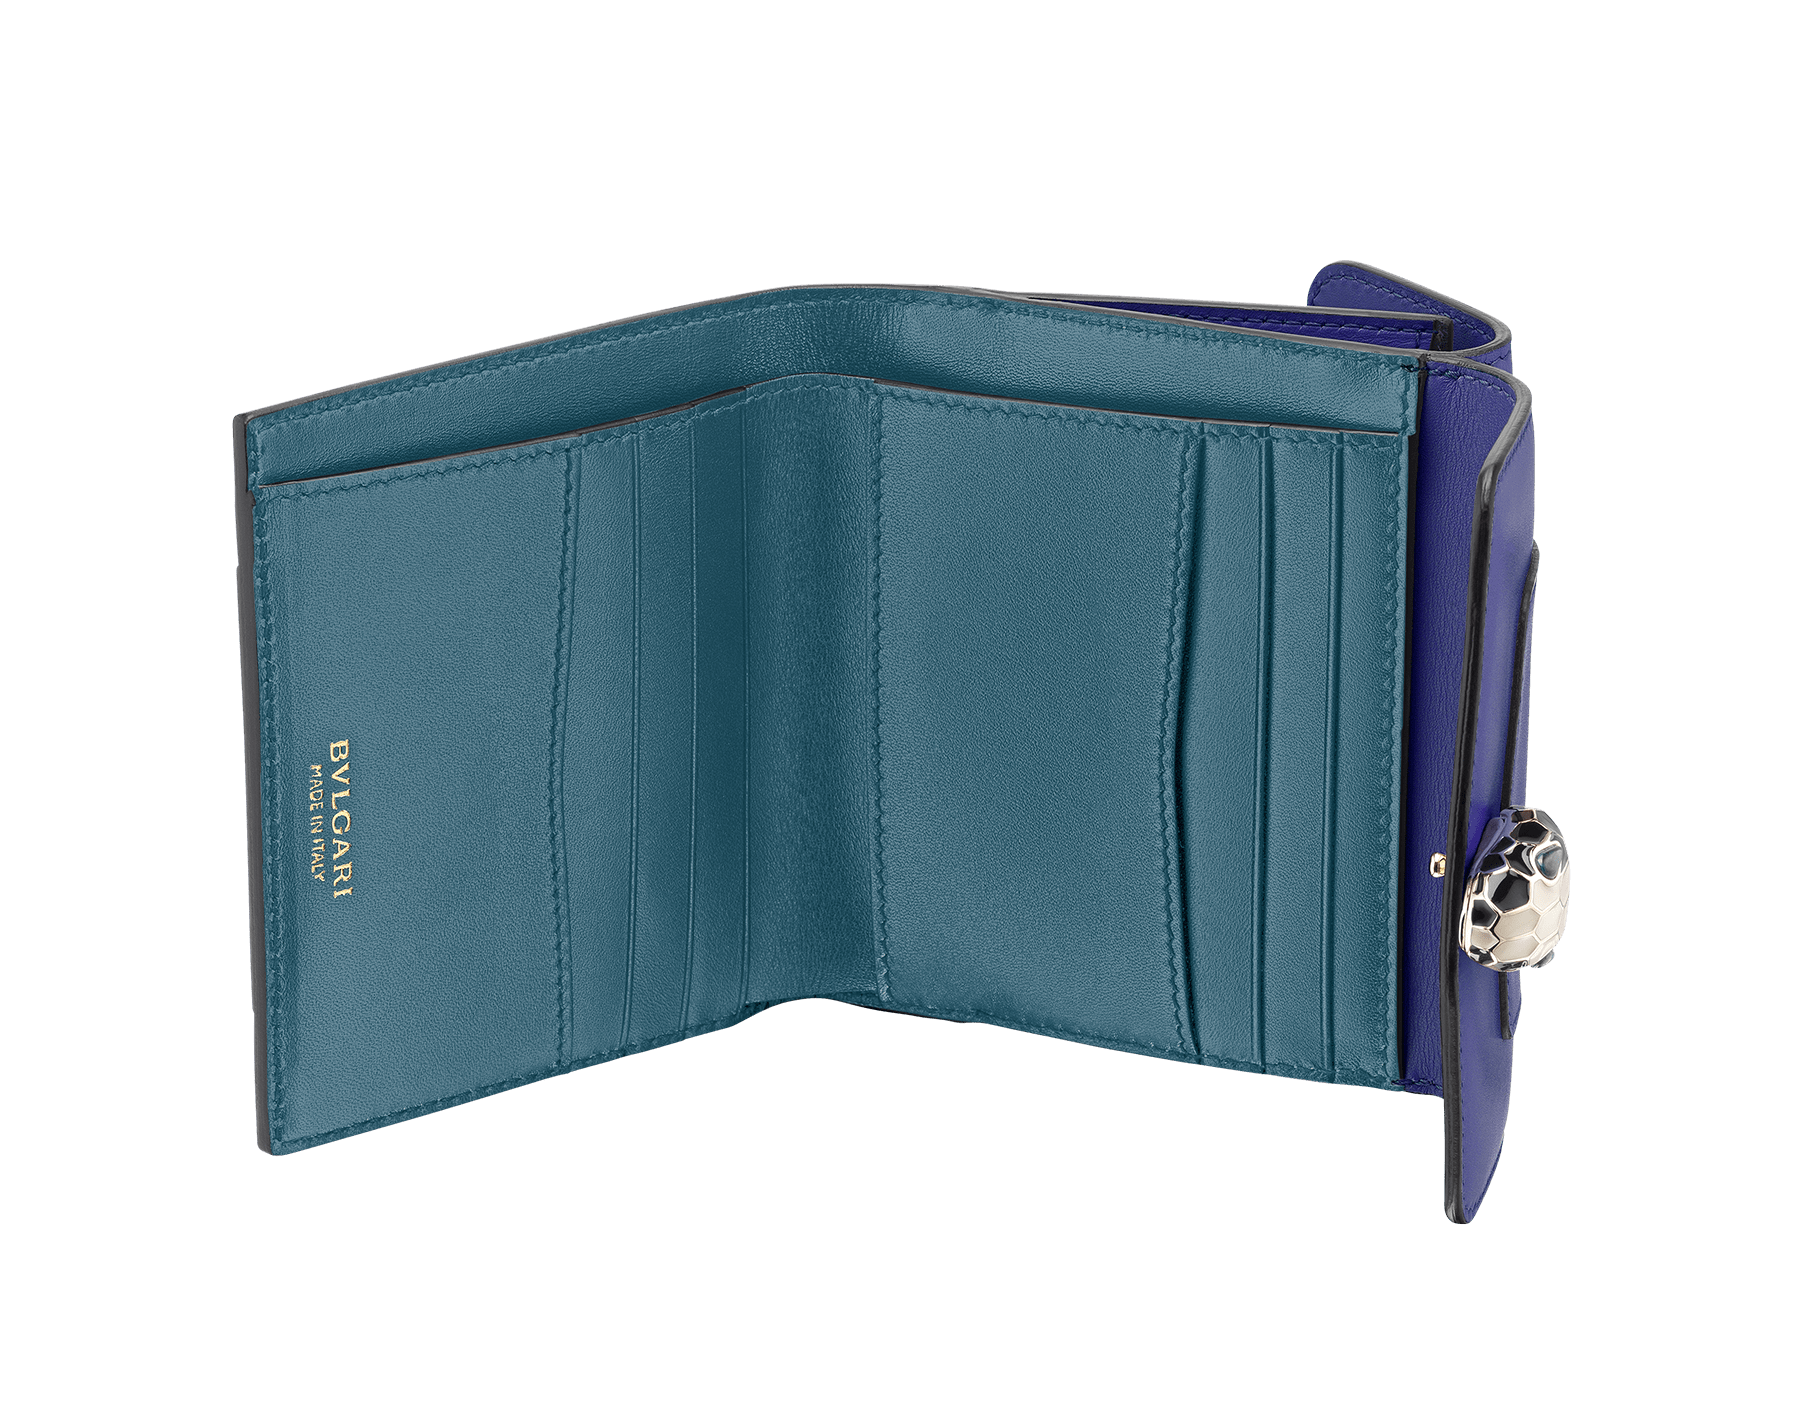 Serpenti Forever square compact wallet in daisy topaz and crystal rose calf leather. Iconic snake head stud closure in black and white agate enamel, with green malachite eyes. SEA-WLT-COMPACT-3Fa image 2